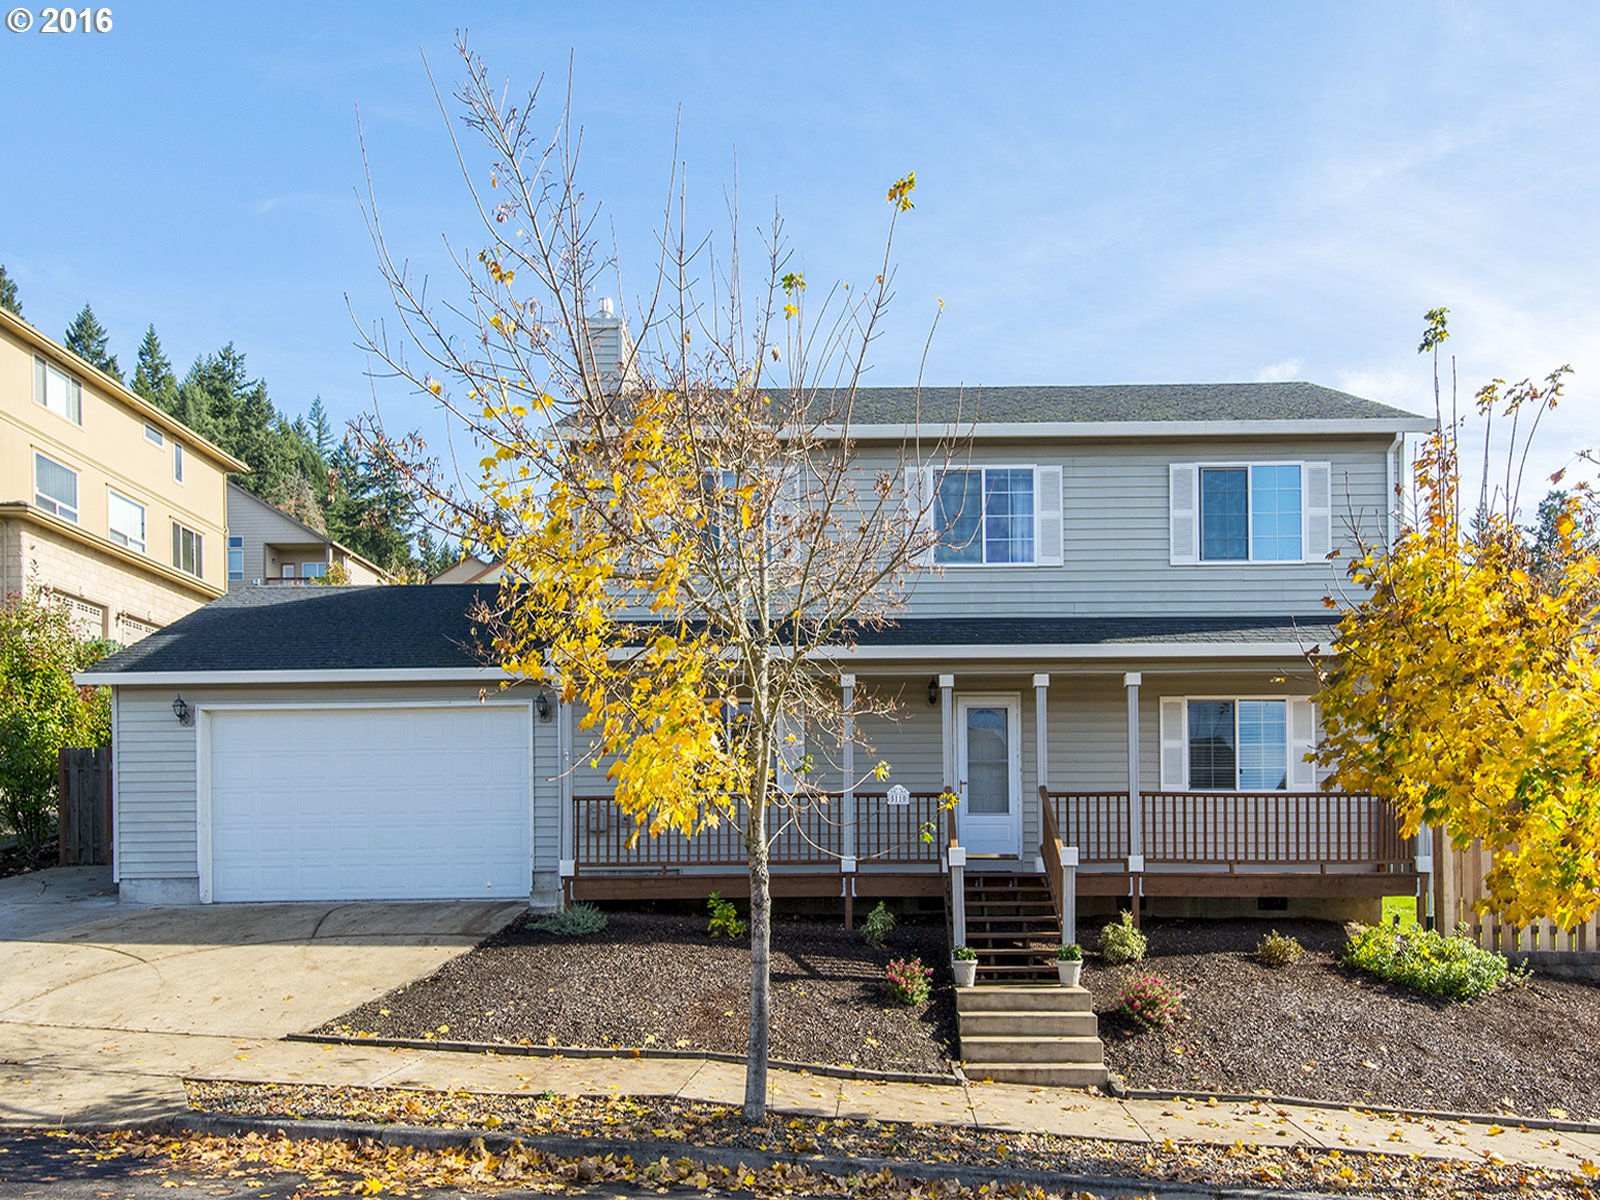 2133 sq. ft 4 bedrooms 2 bathrooms  House For Sale,Portland, OR